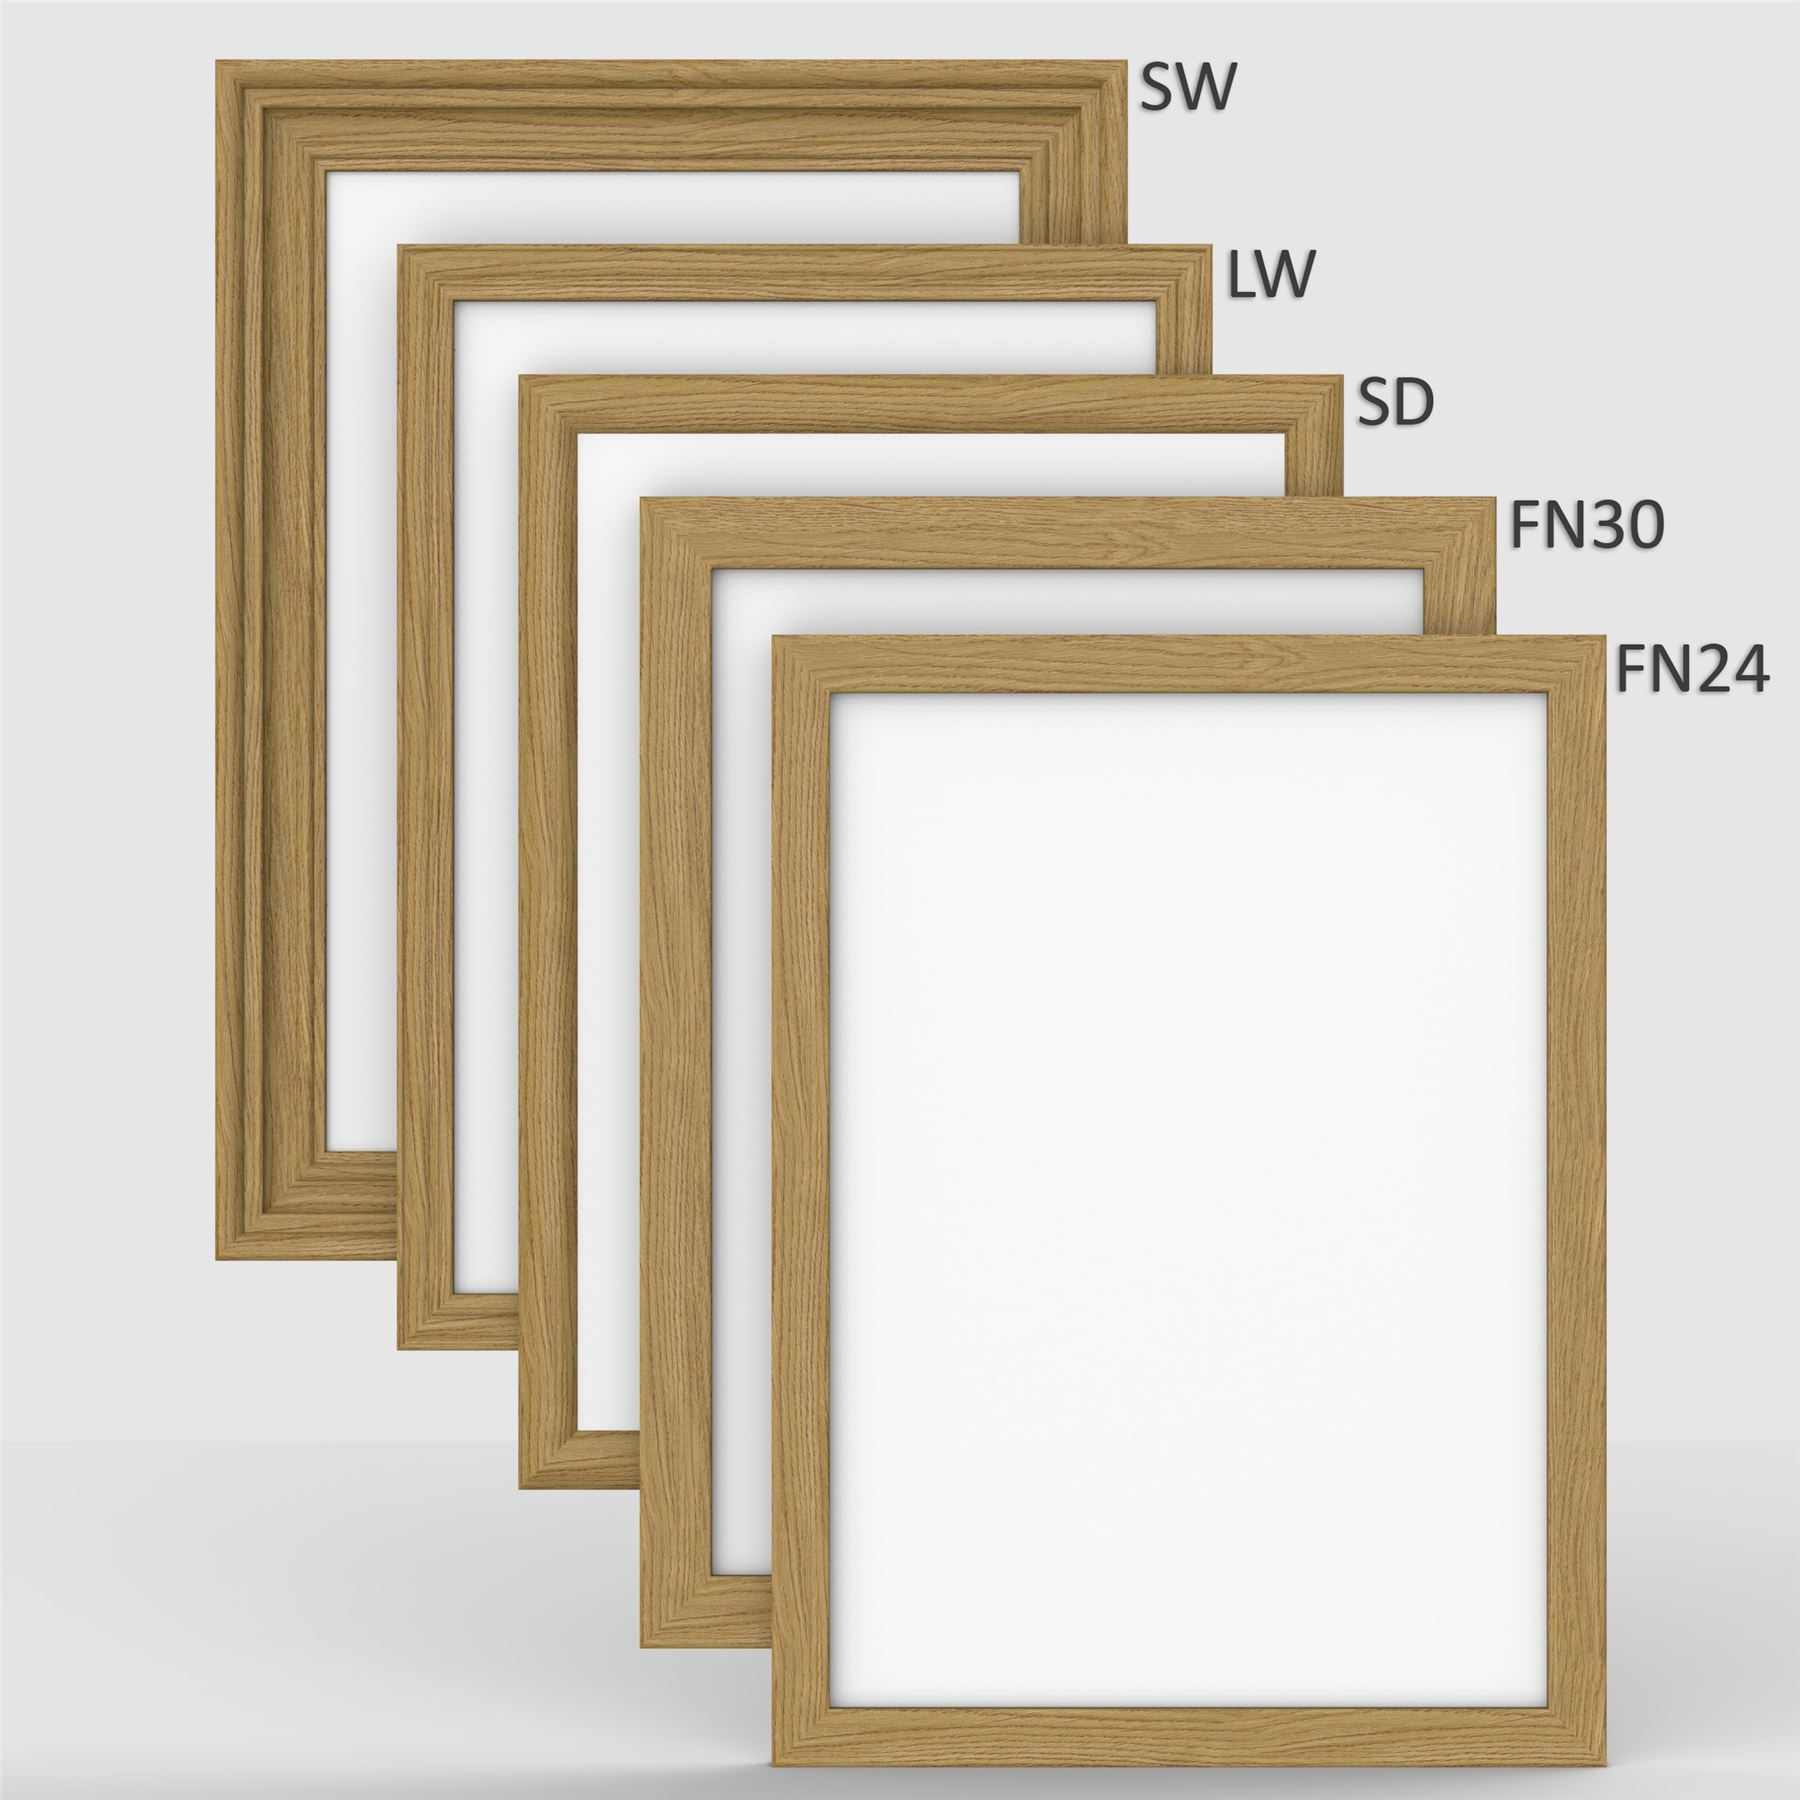 Oak-Frame-Picture-Poster-Frame-in-Popular-Styles-and-All-sizes-A1-A2-A3-A4-A5